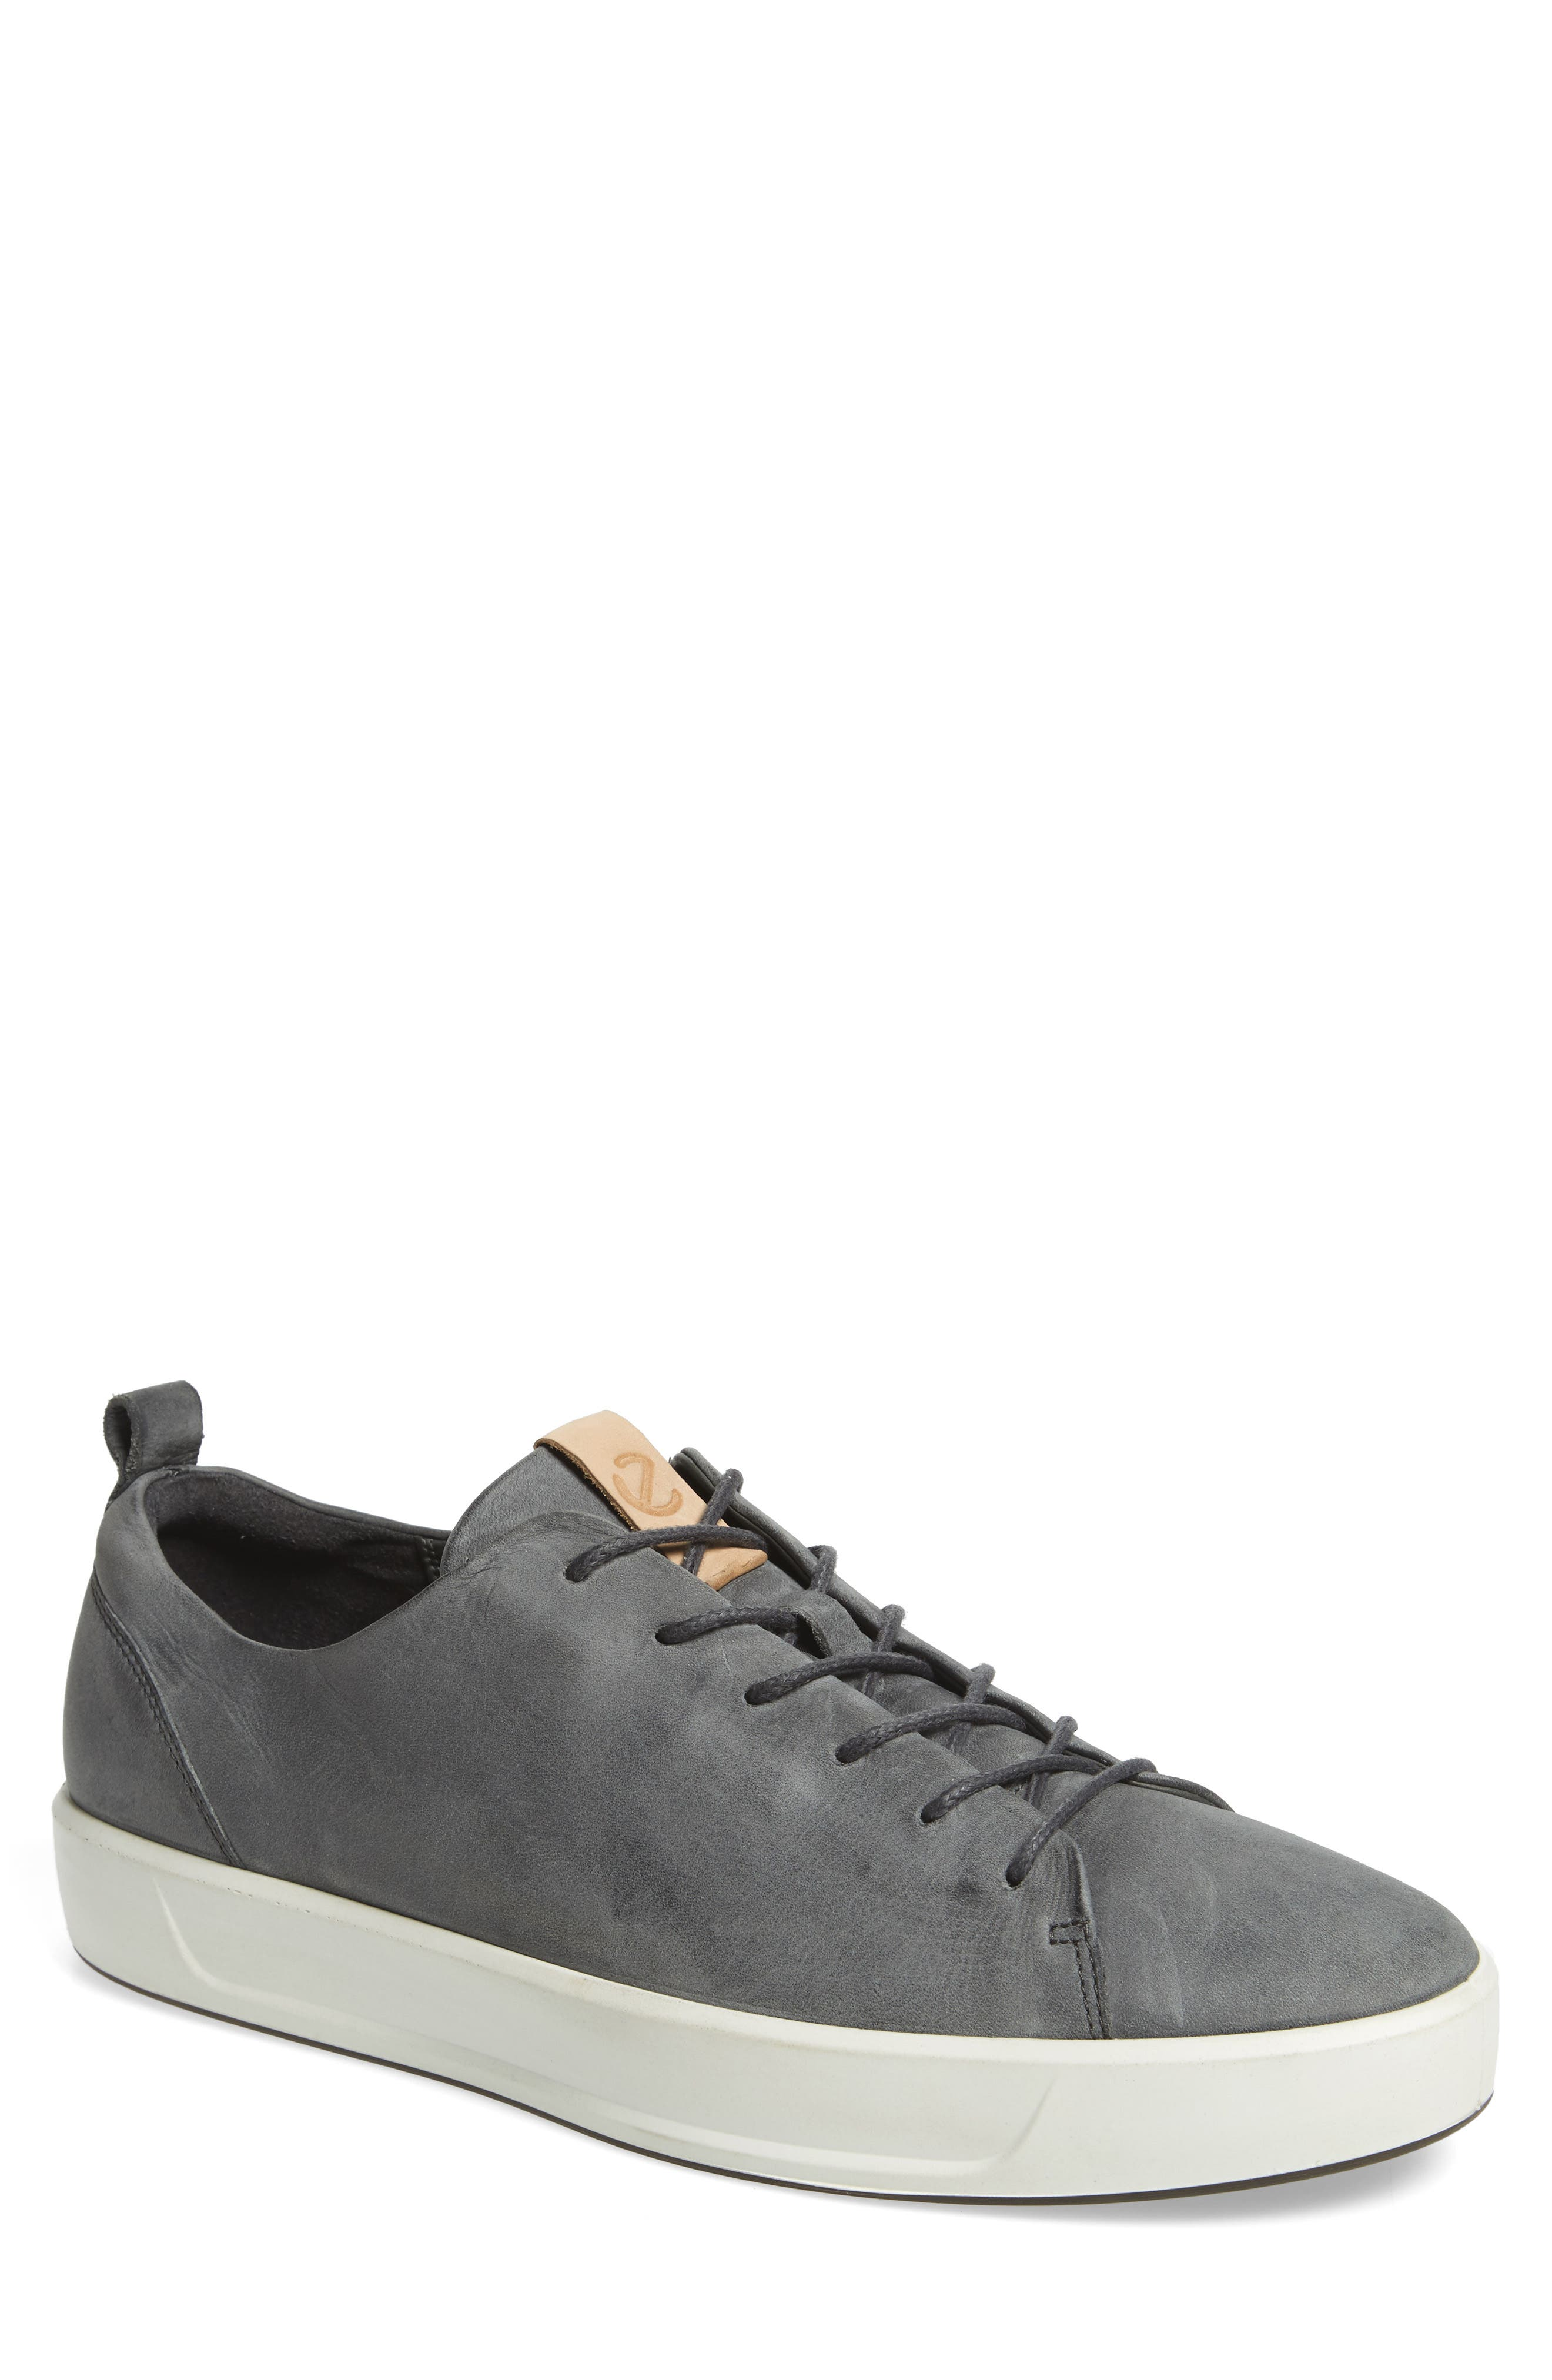 Soft 8 Sneaker,                         Main,                         color, DARK SHADOW LEATHER